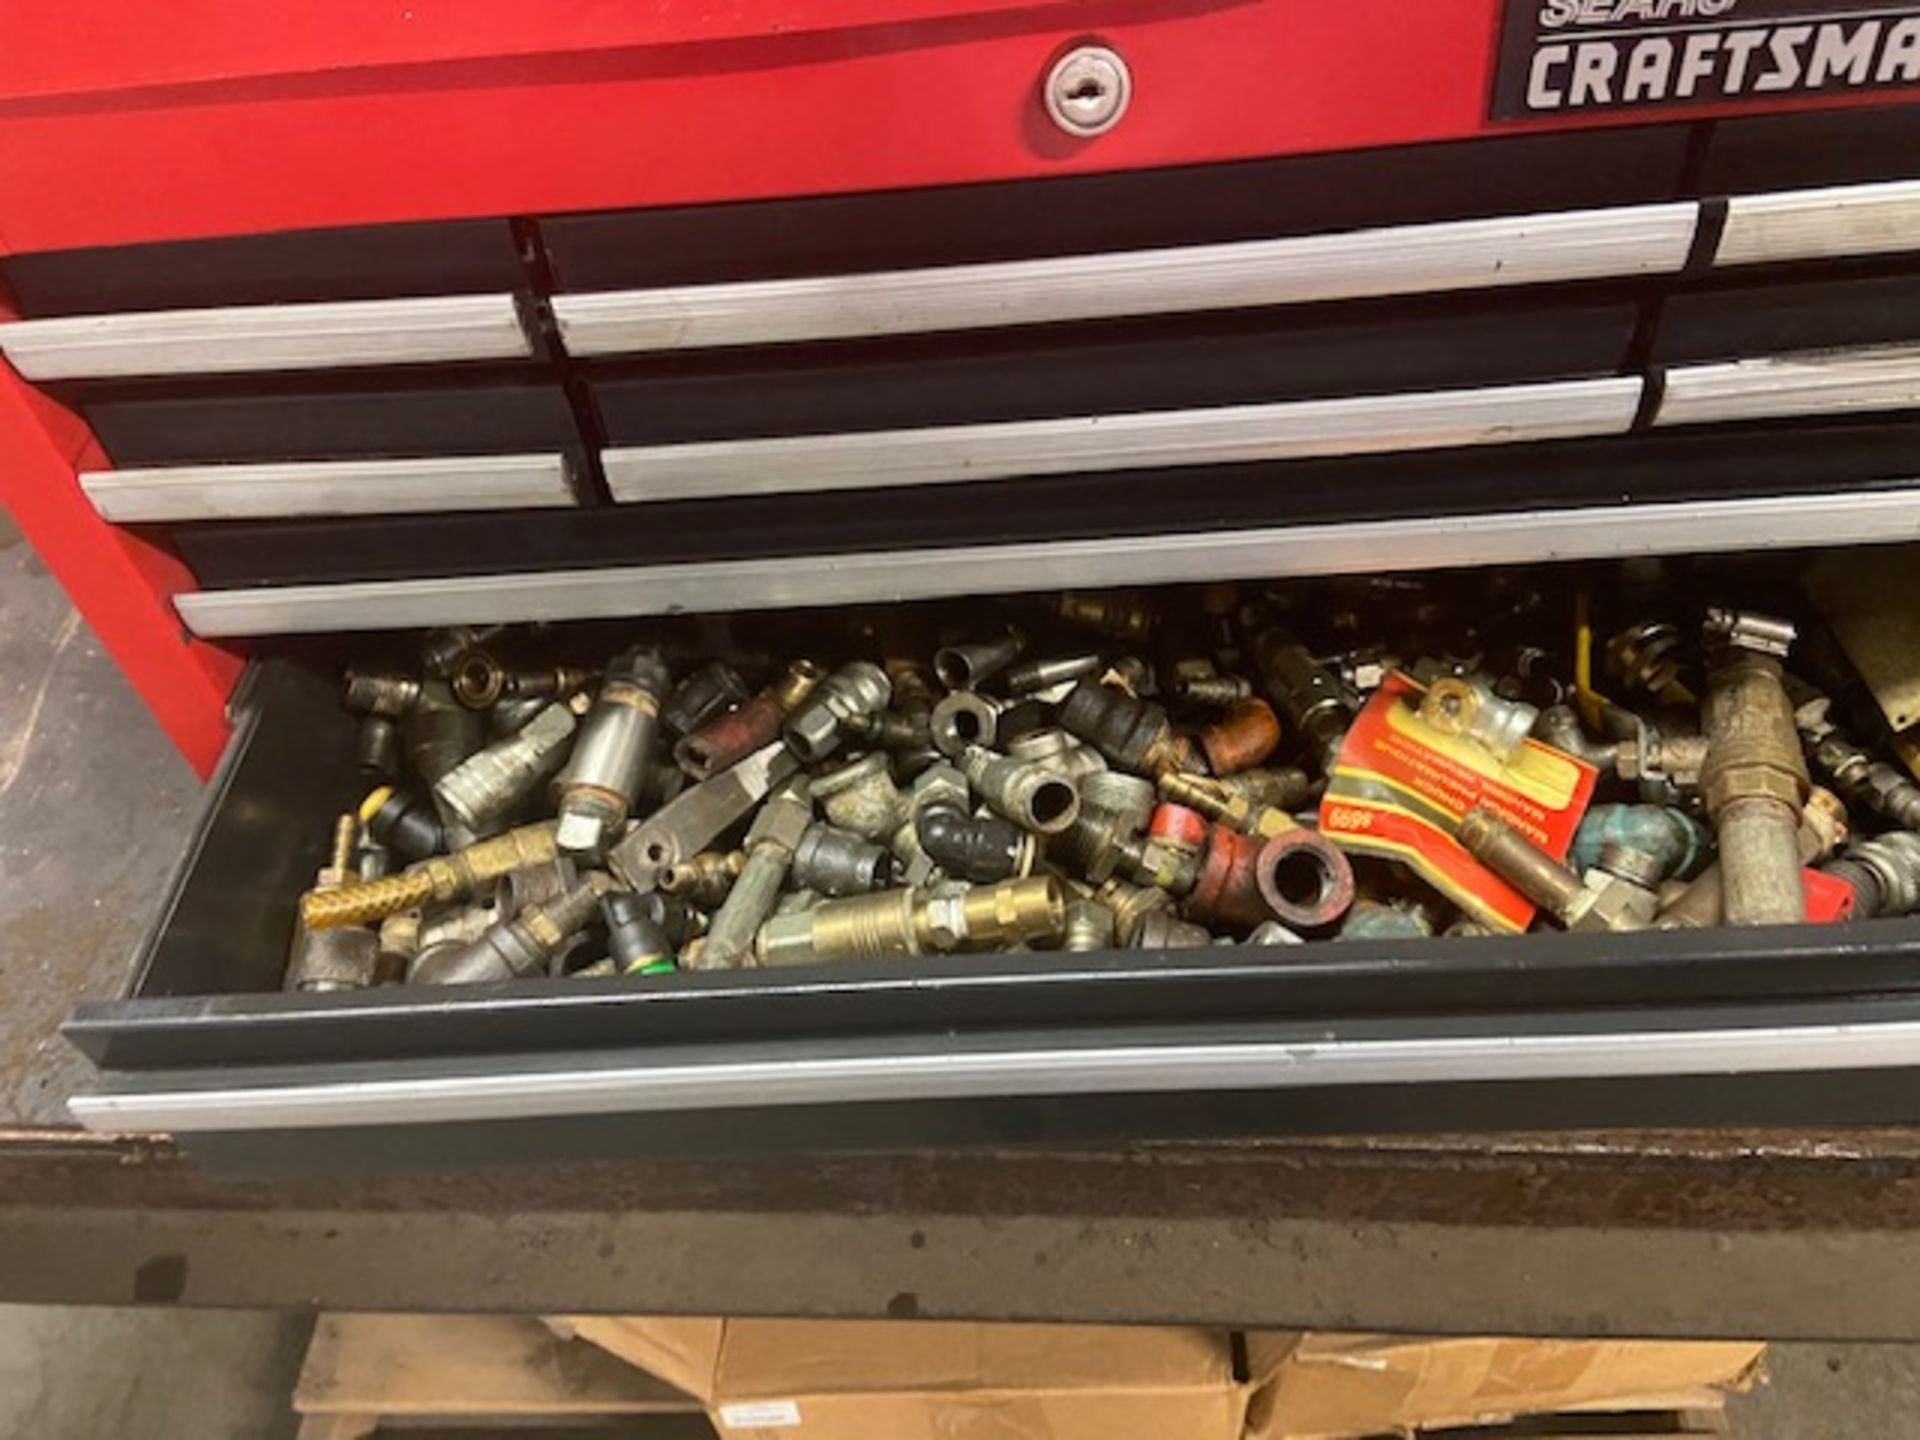 Mastercraft Heavy Duty Tool Cabinet LOADED with contents (hand tools, large drill bits and more) - Image 6 of 6